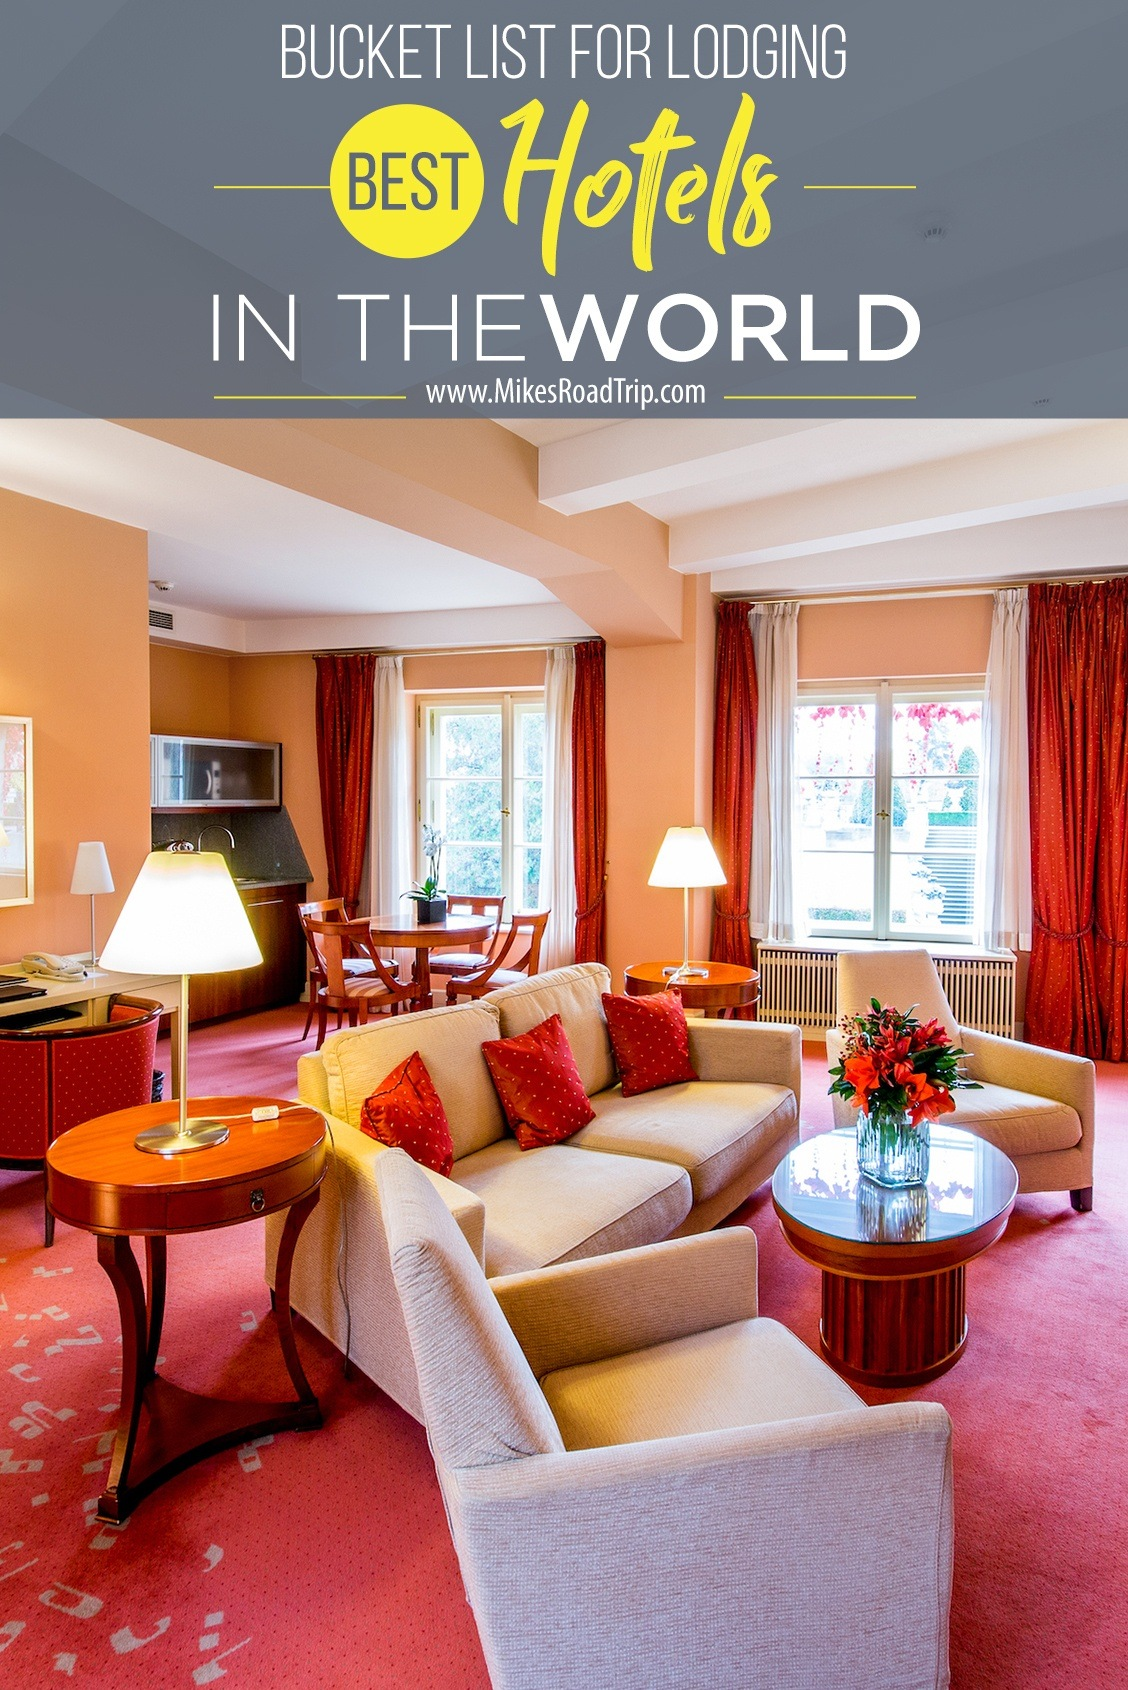 Bucket List for Lodging - Best Hotels in the World.